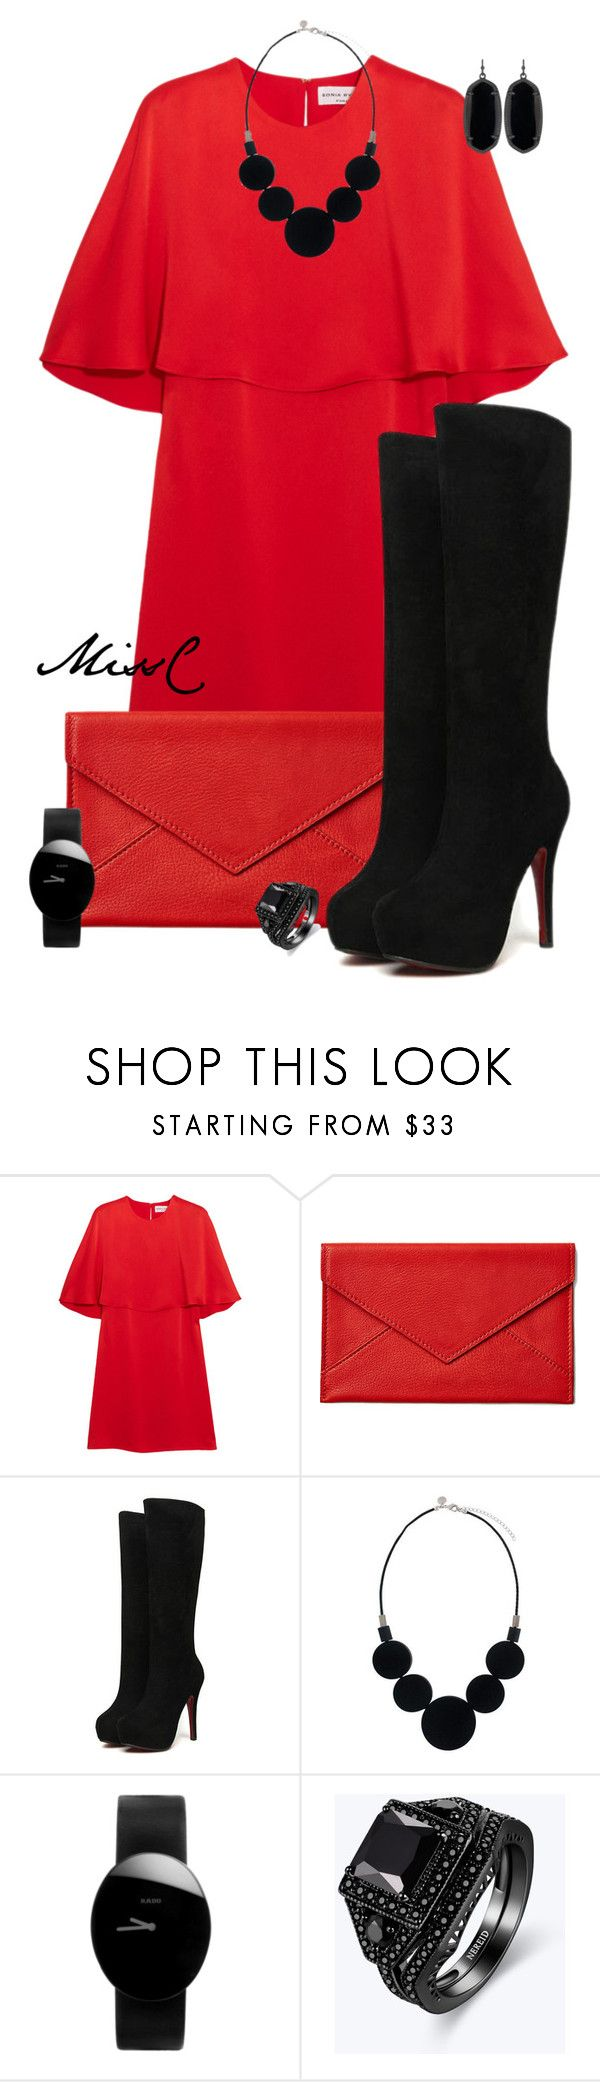 """""""Set #9443"""" by charna-duncan ❤ liked on Polyvore featuring Sonia Rykiel, Graphic Image, Rado and Kendra Scott"""